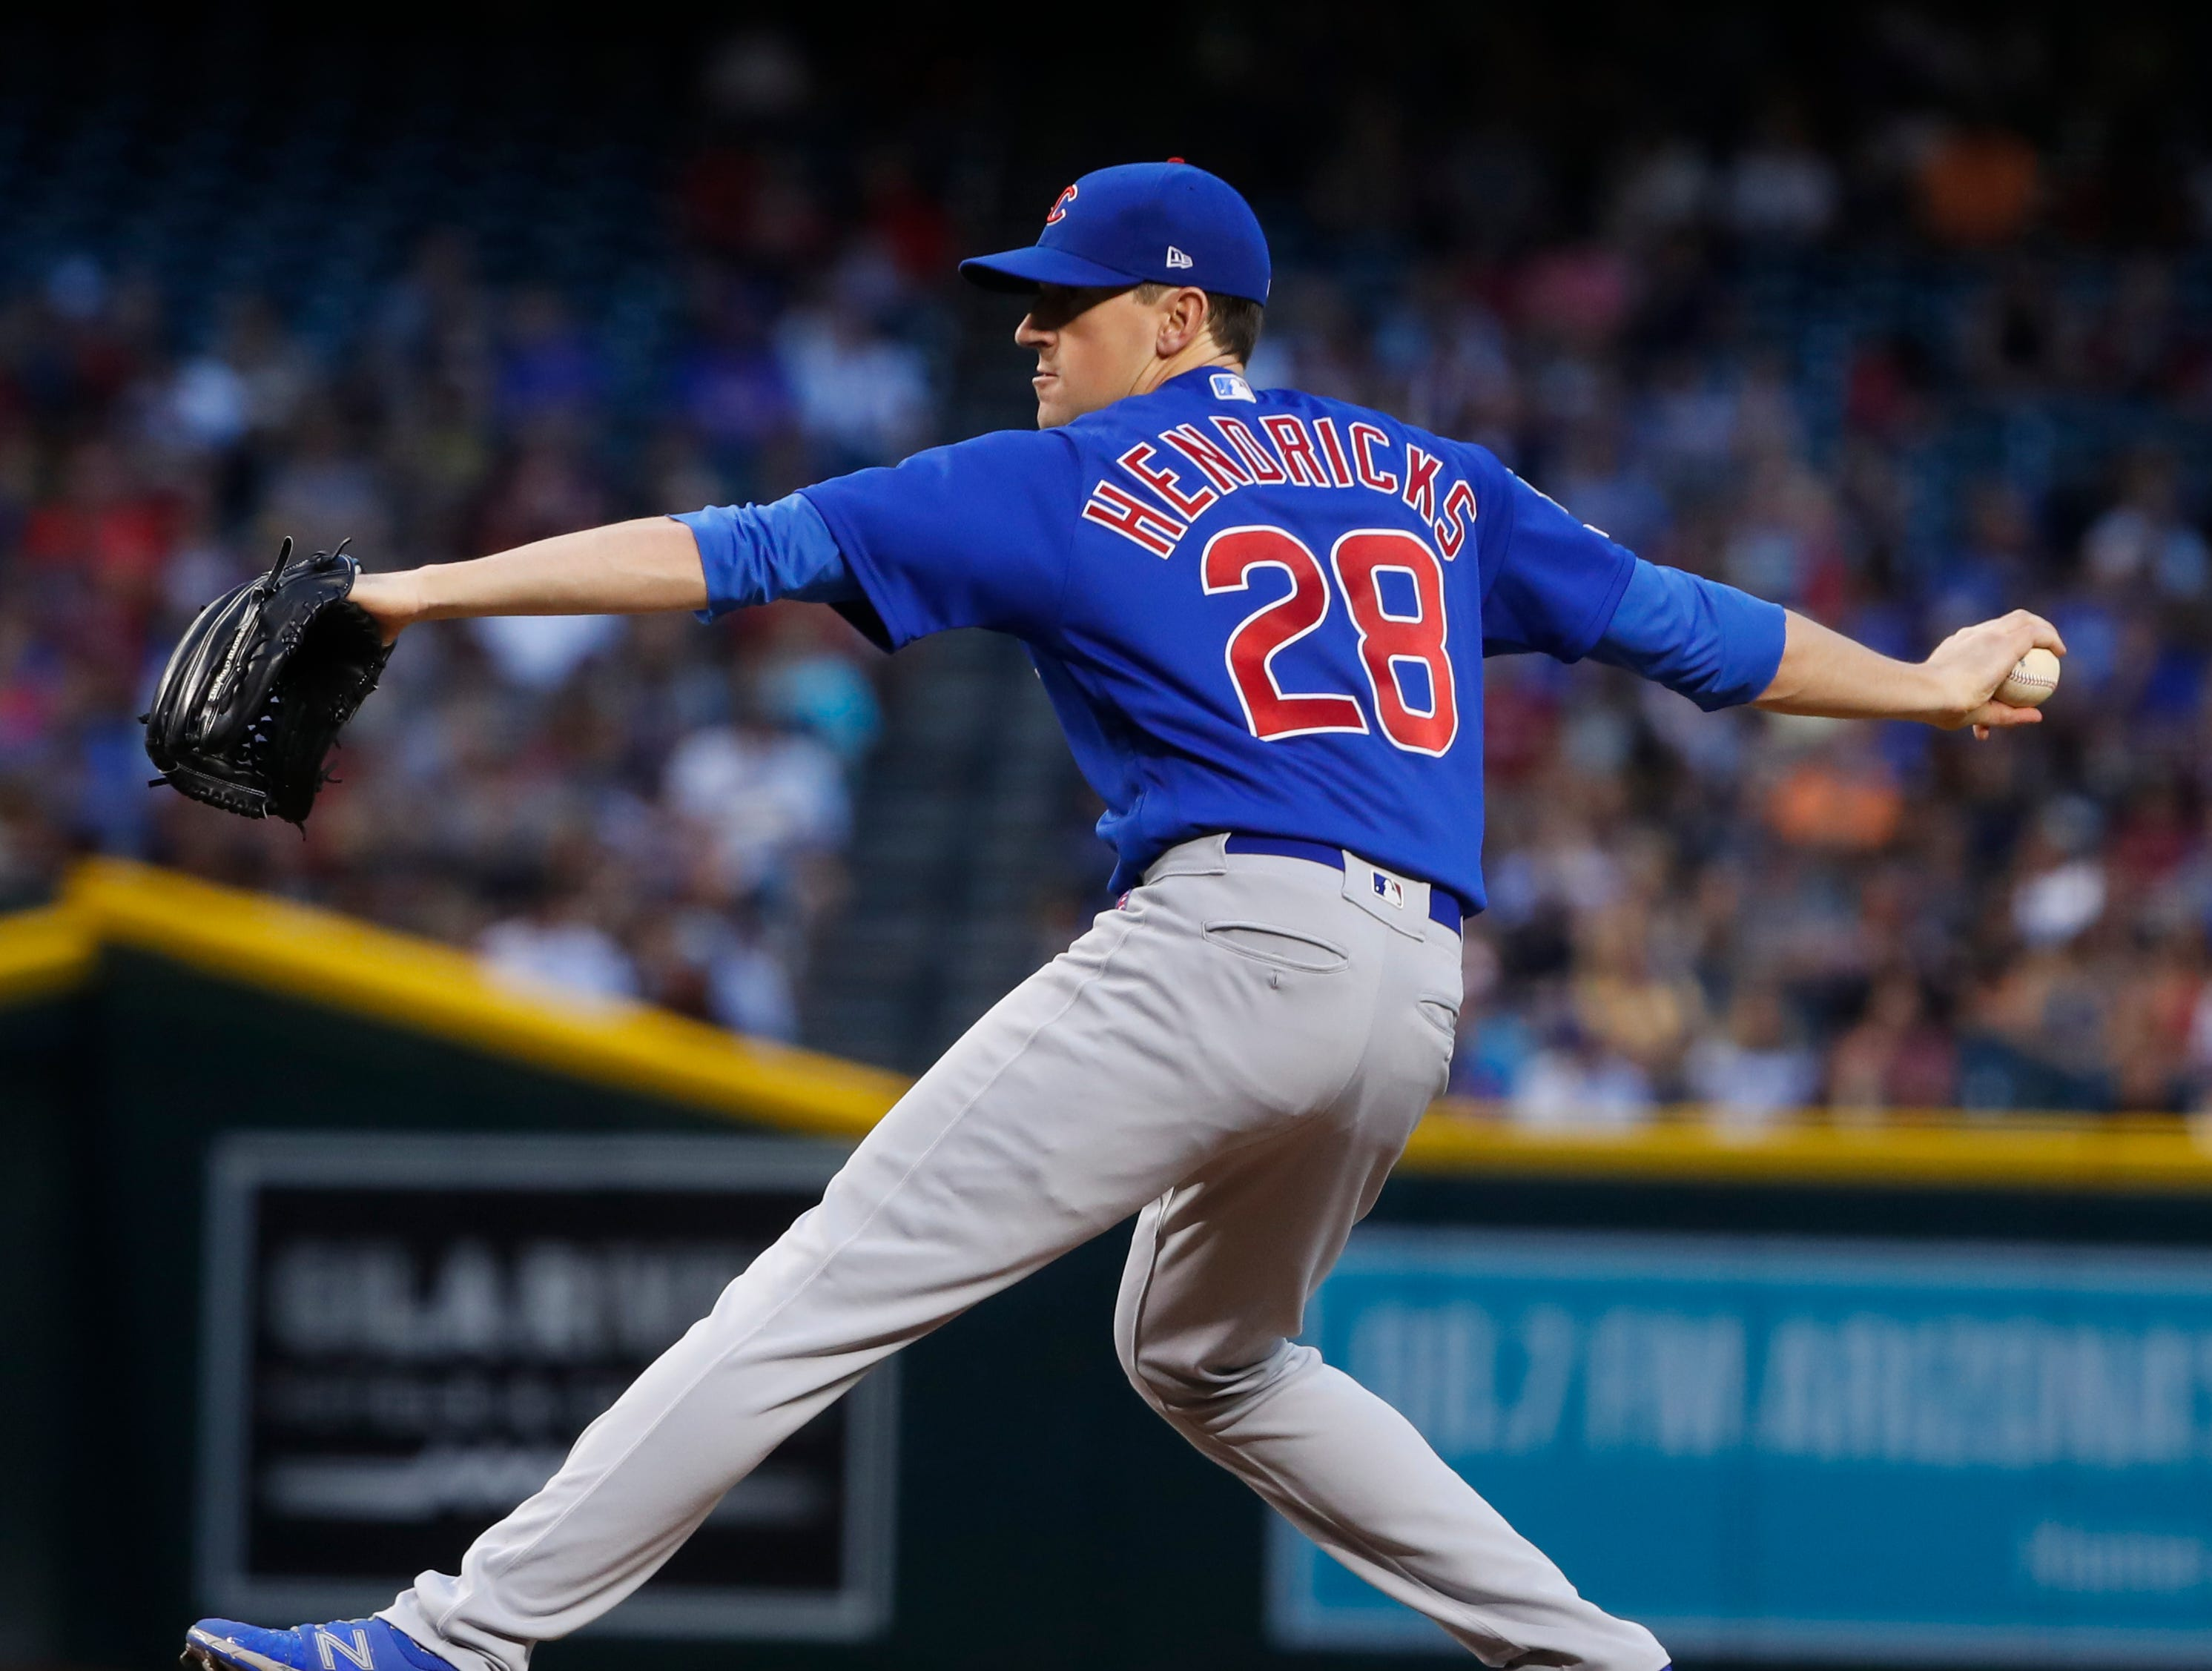 Cubs' Kyle Hendricks (28) pitches in the first inning gains the Diamondbacks during the first inning at Chase Field in Phoenix, Ariz. on April 26, 2019.